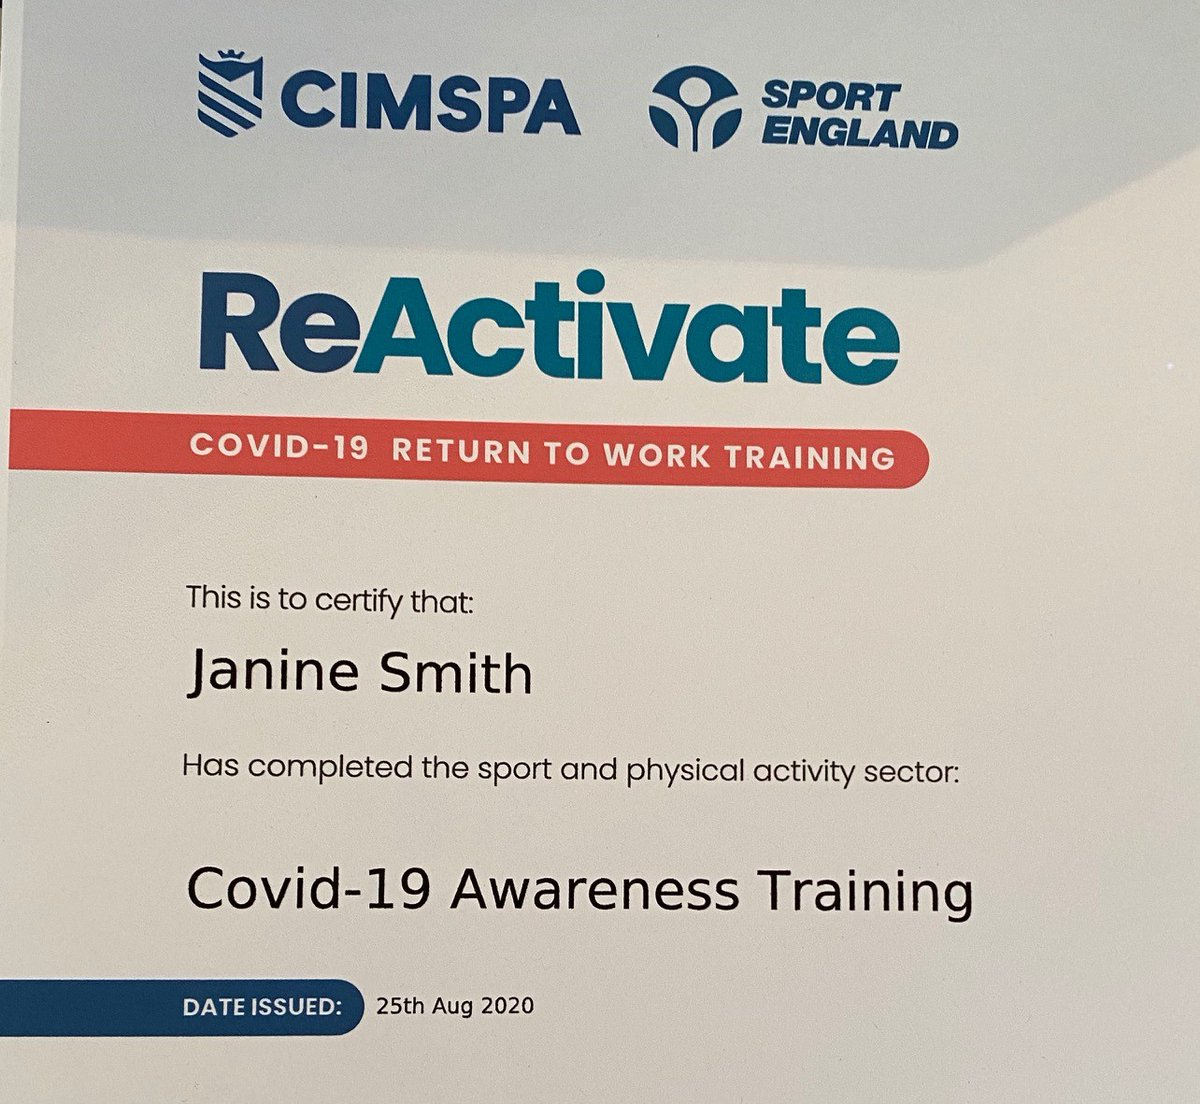 EXTEND class reopening @SETC3 and @EXTENDexercise. Thank you to CIMSPA for a brilliant course on returning to work @cimspa  @AgeUKBirmingham #healthandwellness  Monday @3pm  starting October 5th 2020 https://t.co/xtFgzqiMJL